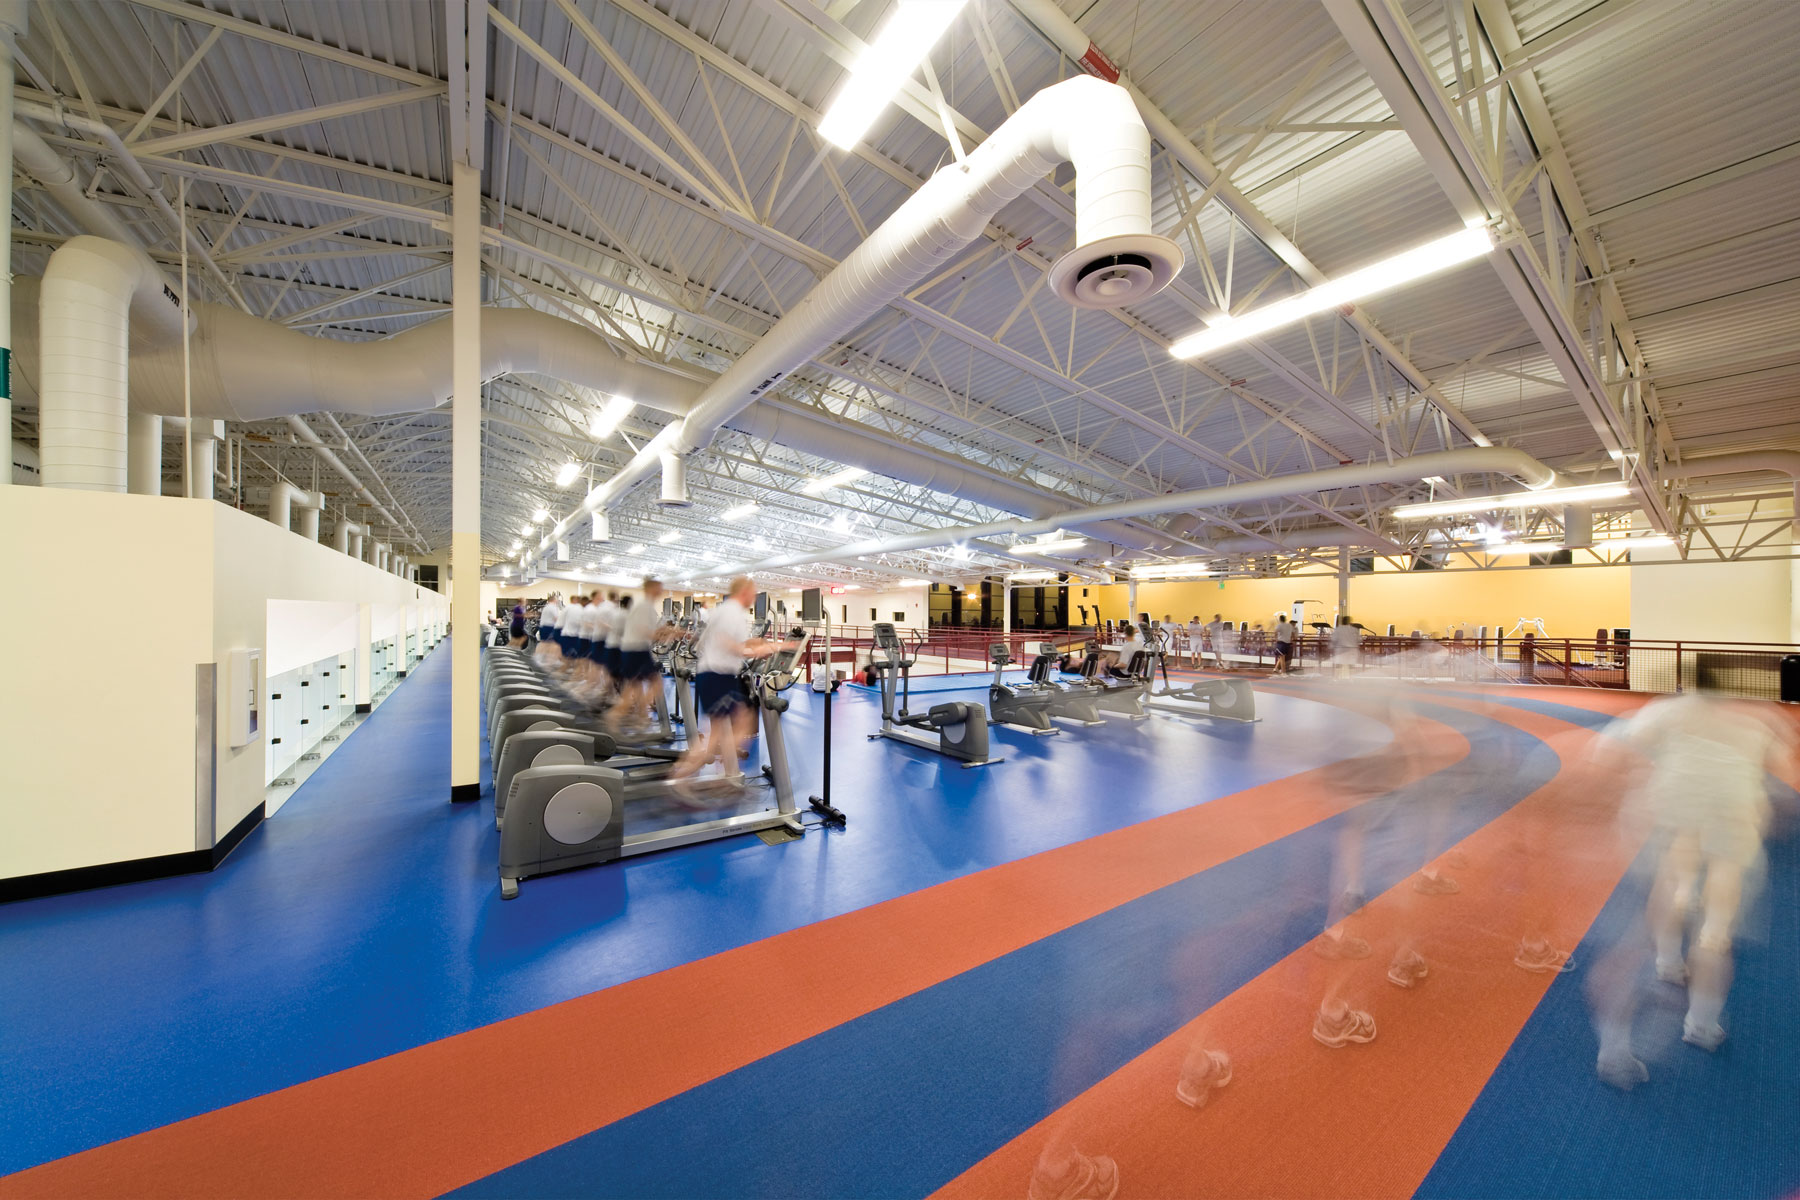 Elmendorf Air Force Base Gym, 